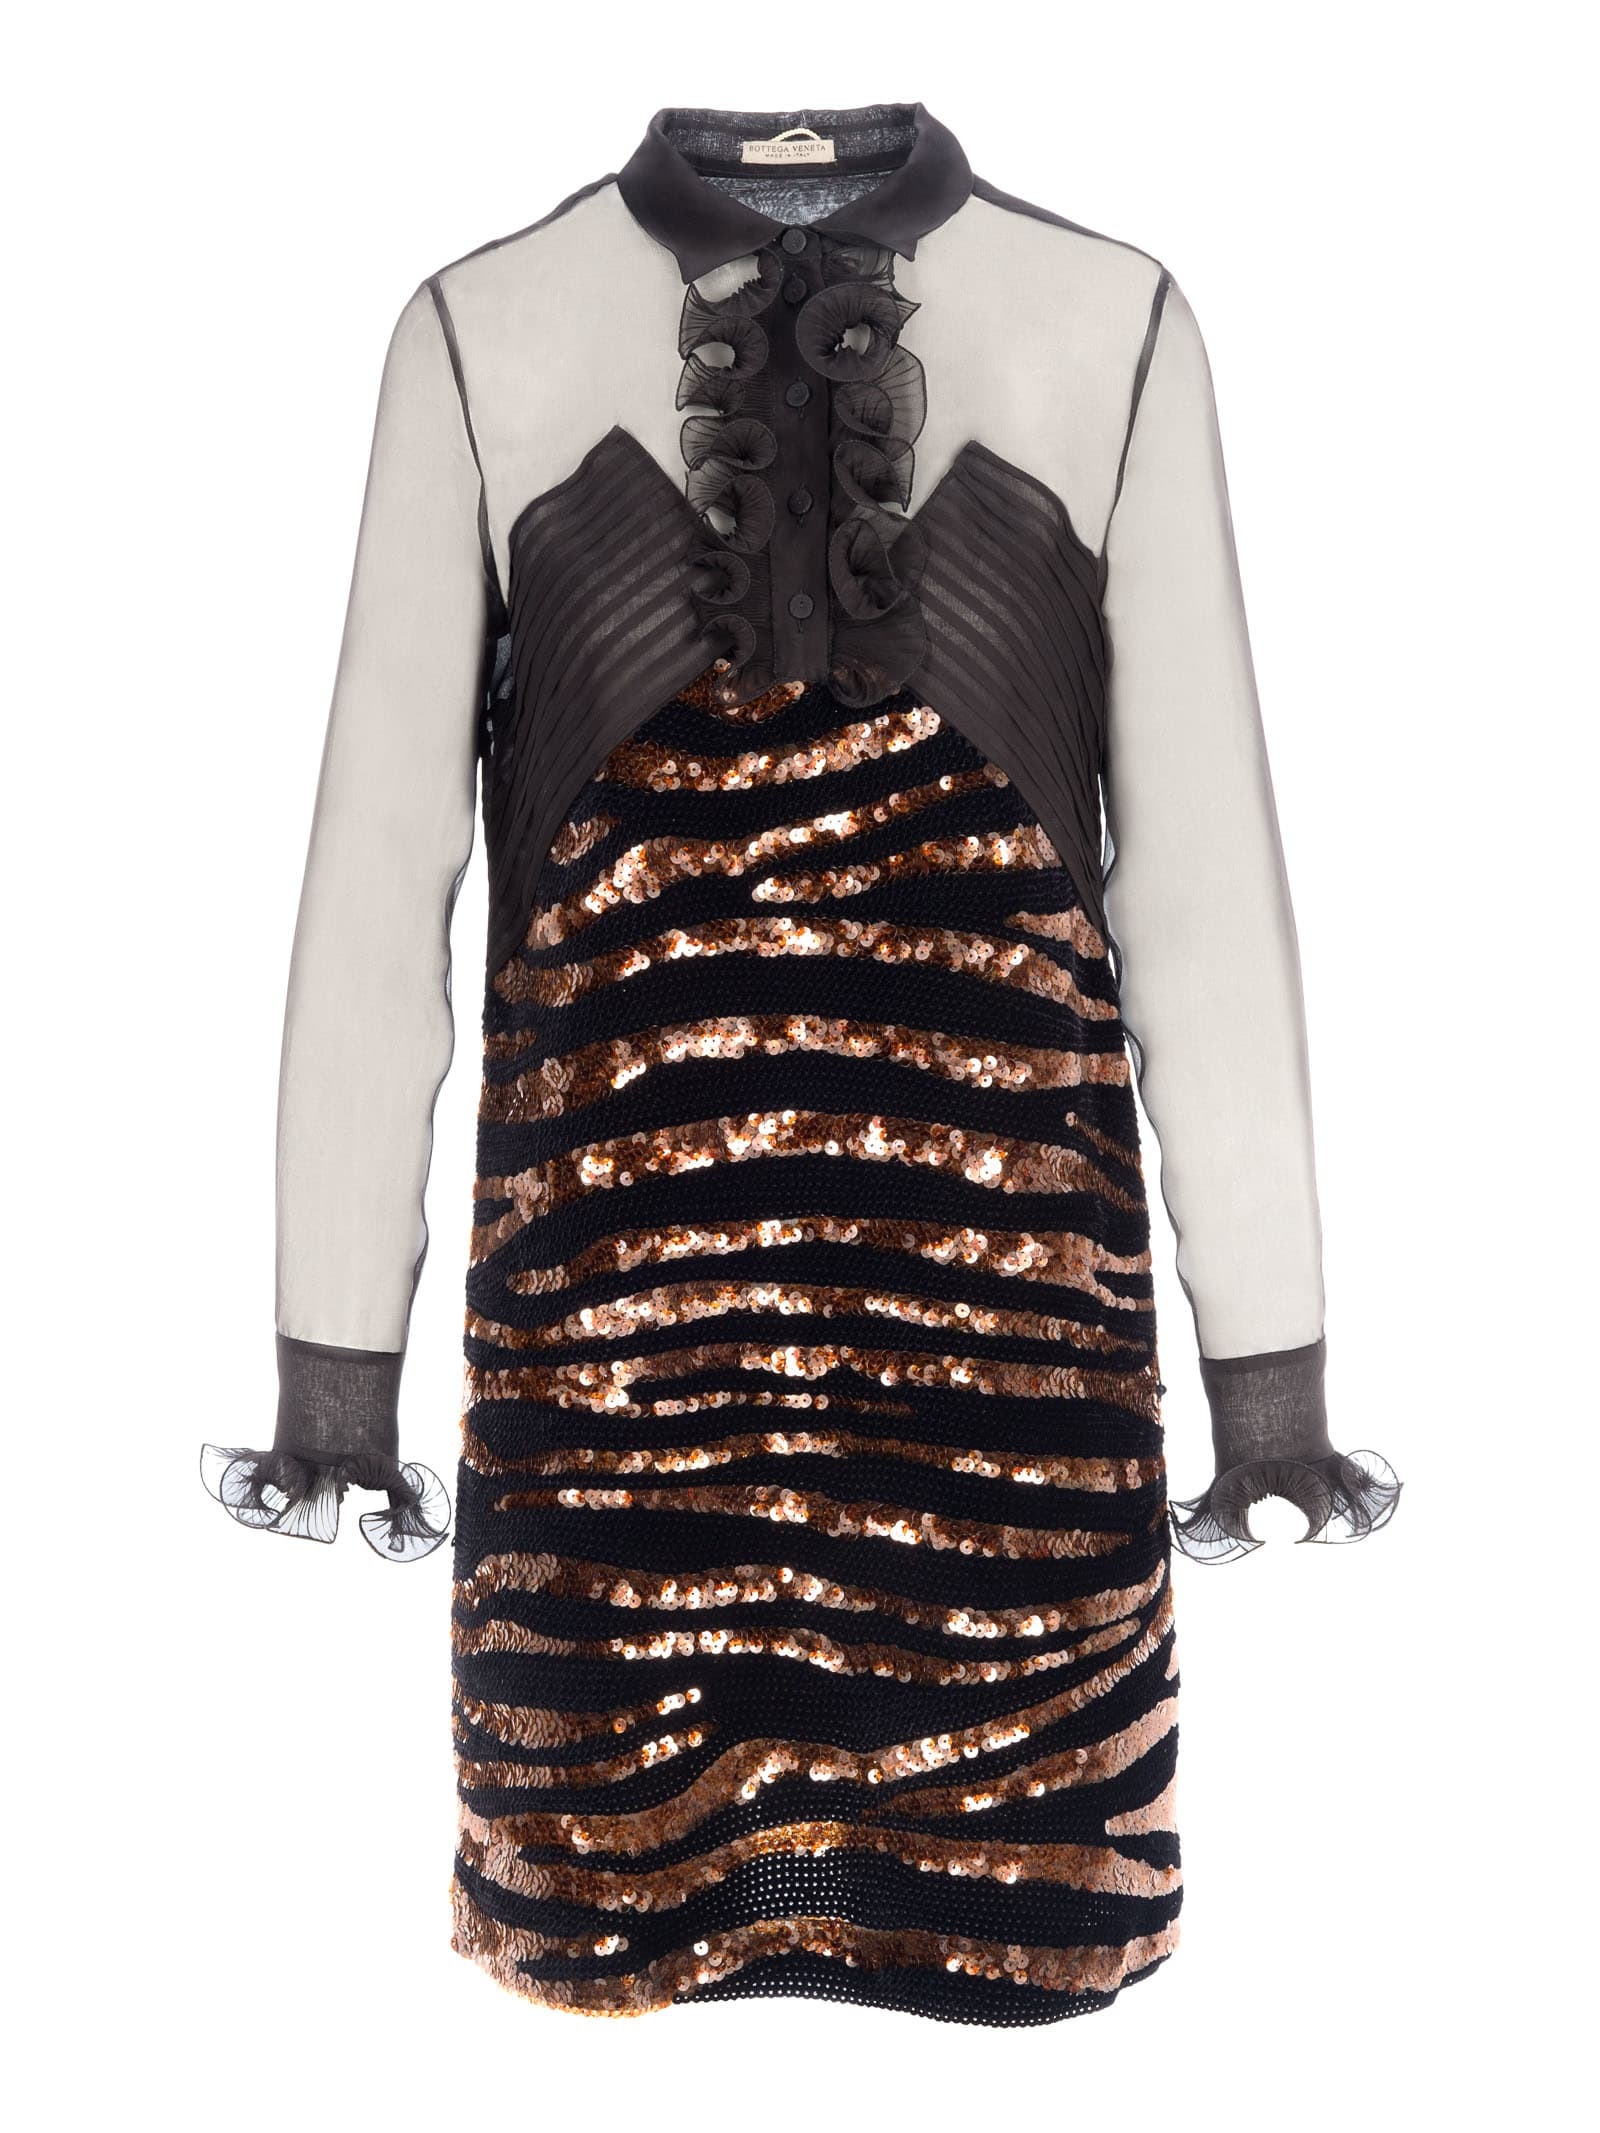 Bottega Veneta Bottega Veneta Sequins Embellishment Dress